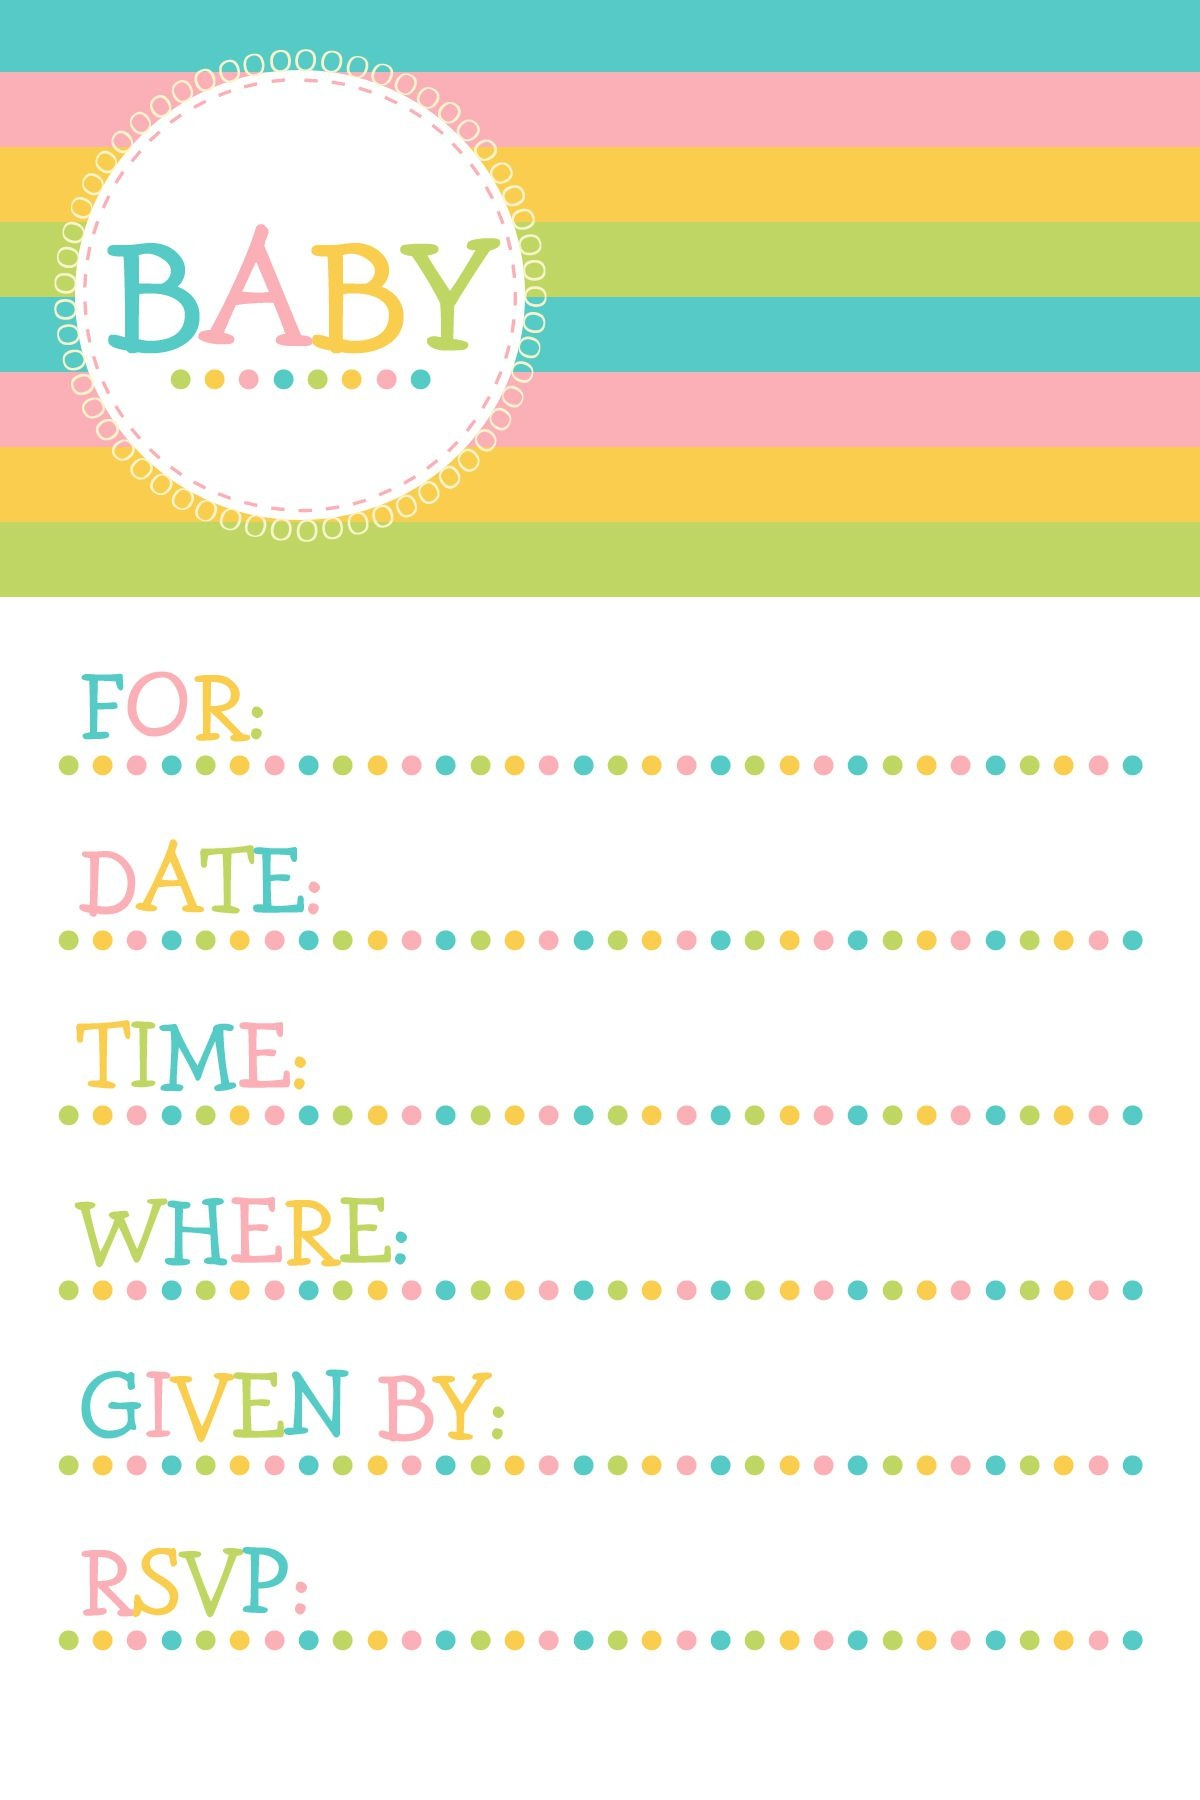 25 Adorable Free Printable Baby Shower Invitations - Free Printable Baby Shower Invitation Maker